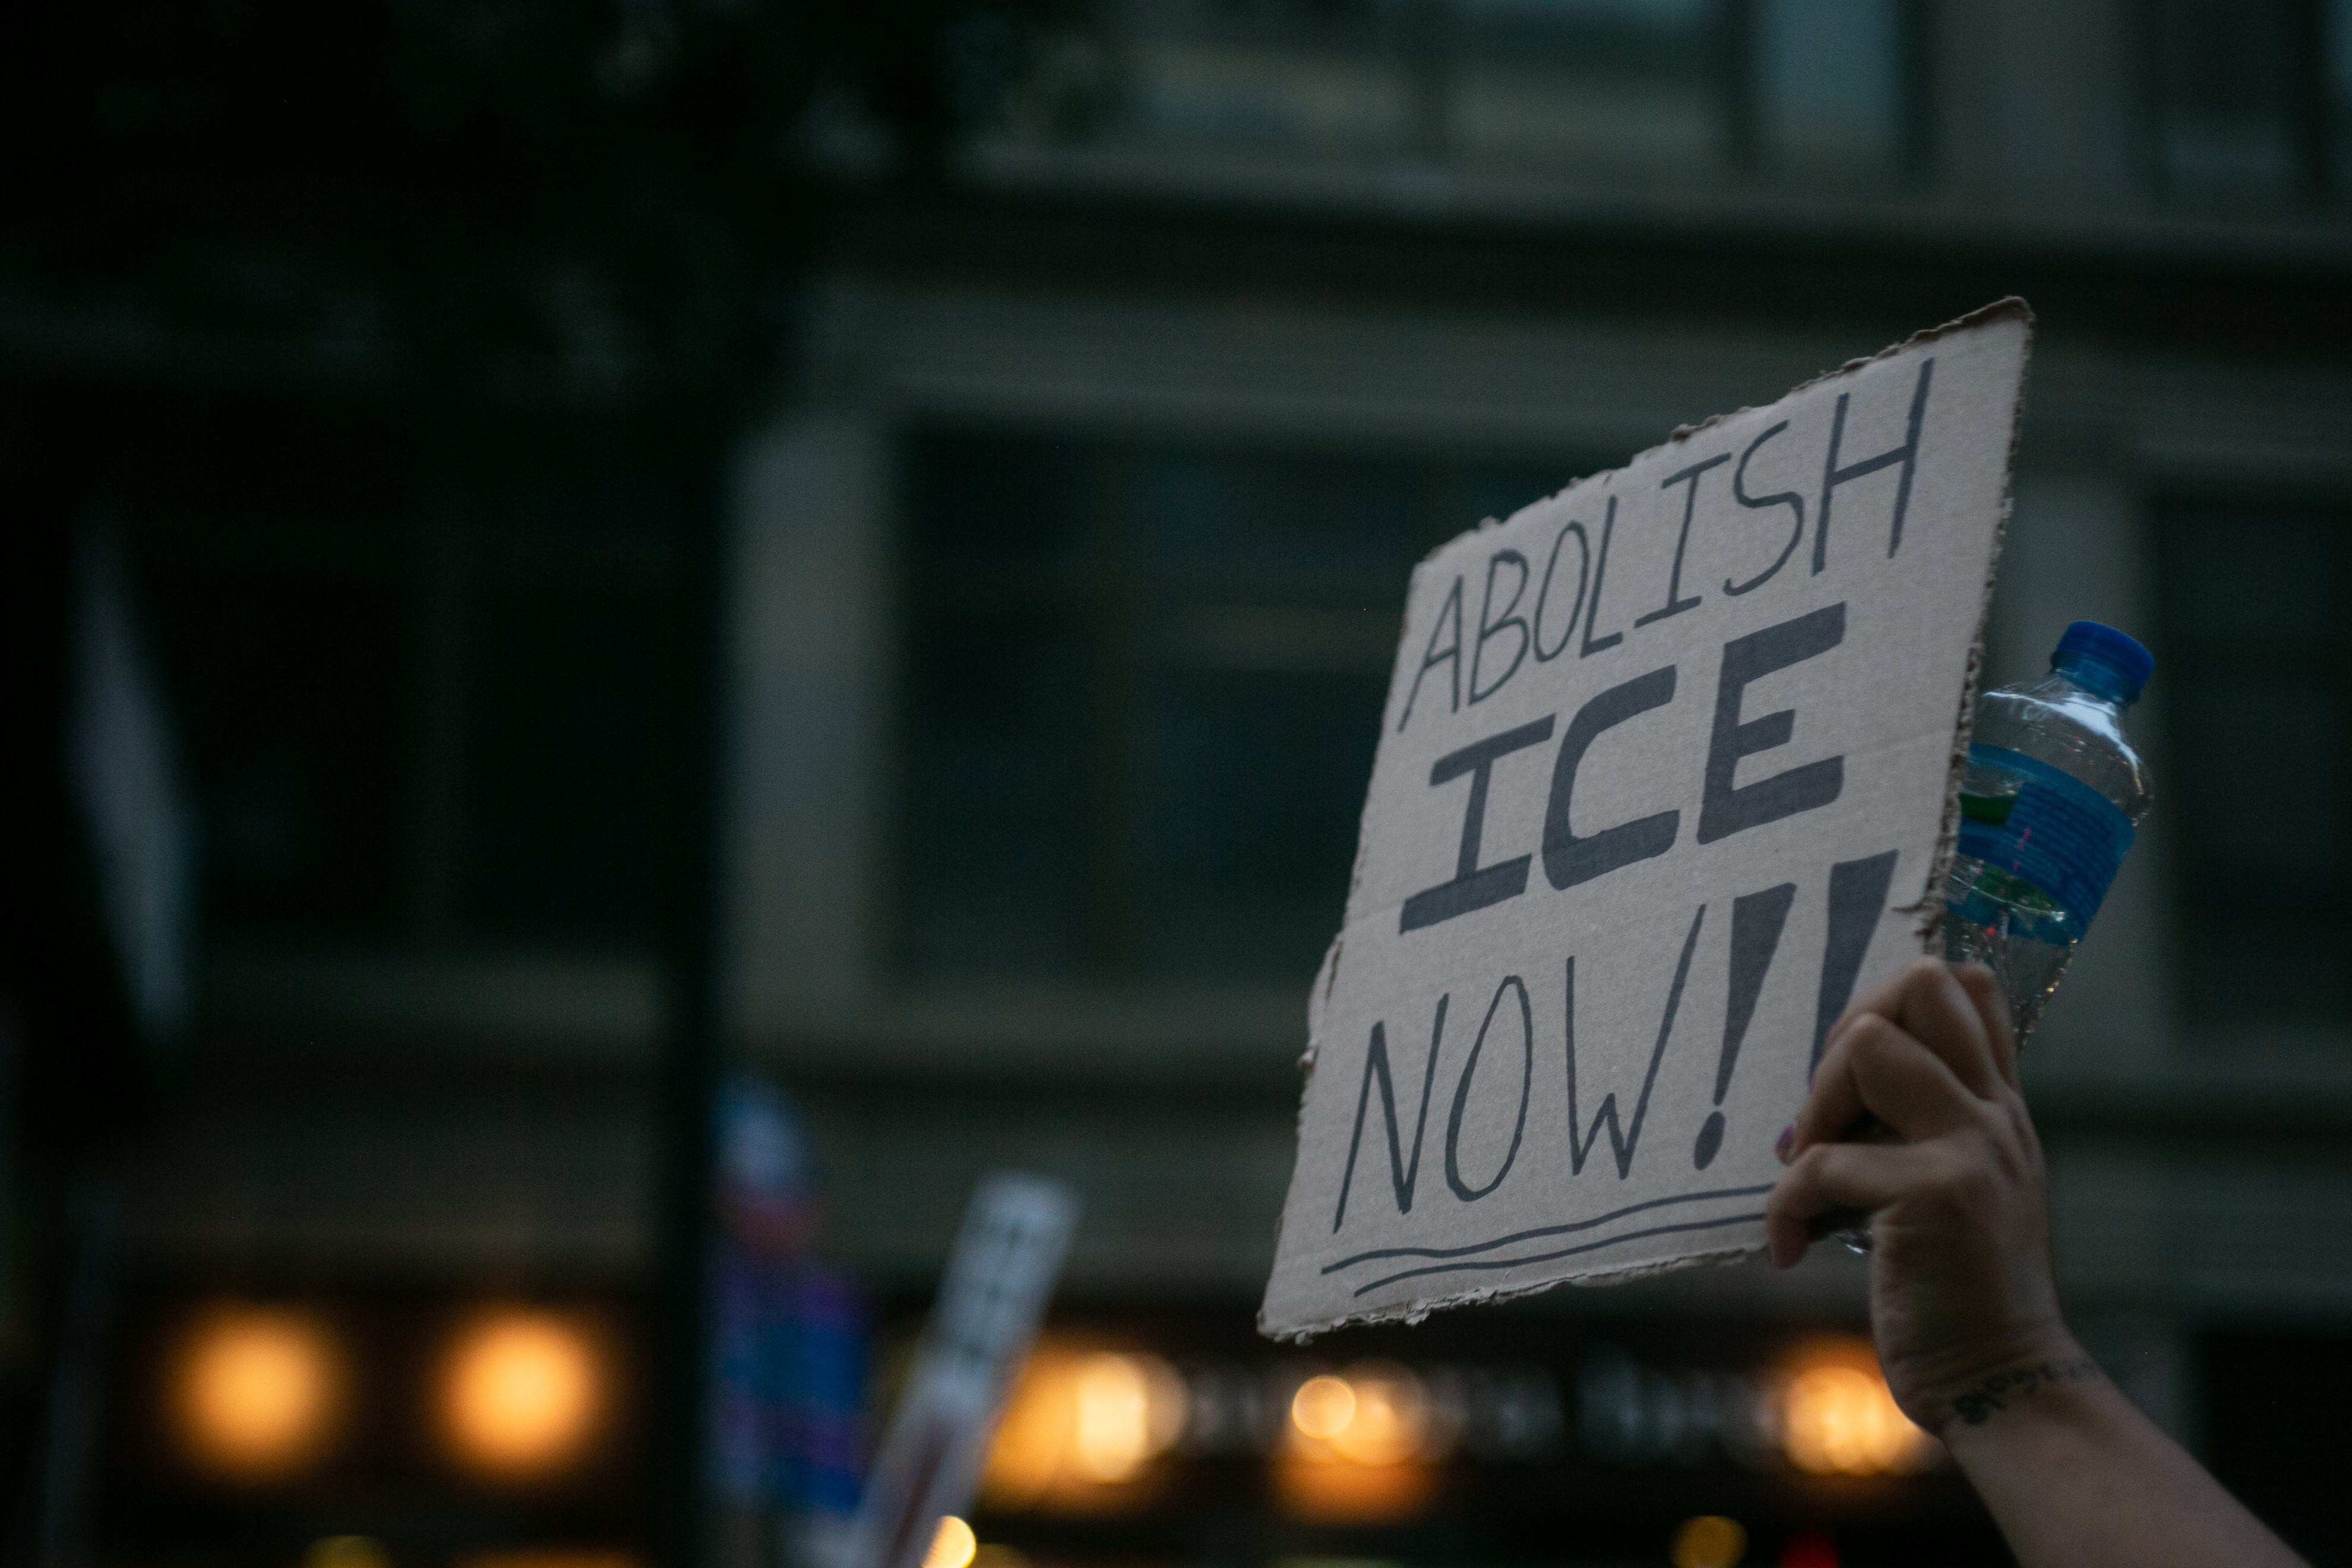 """A hand gripping a bottle of water holds up a sign that reads """"Abolish ICE Now"""" in all caps"""